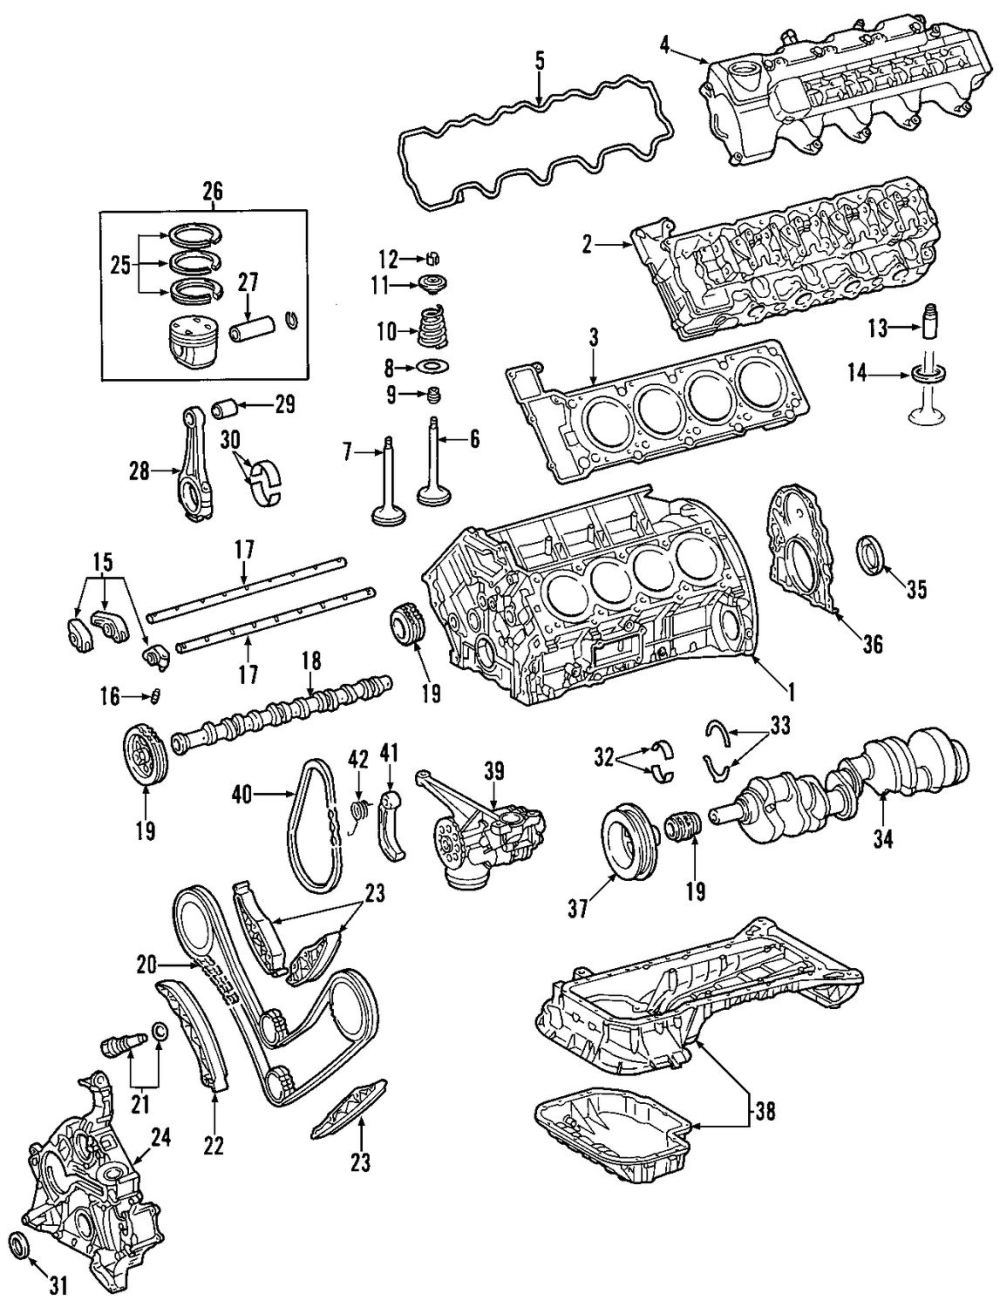 medium resolution of mercedes benz parts diagrams wiring diagram origin engine in ml430 s430 buy crankshaft and bearings parts